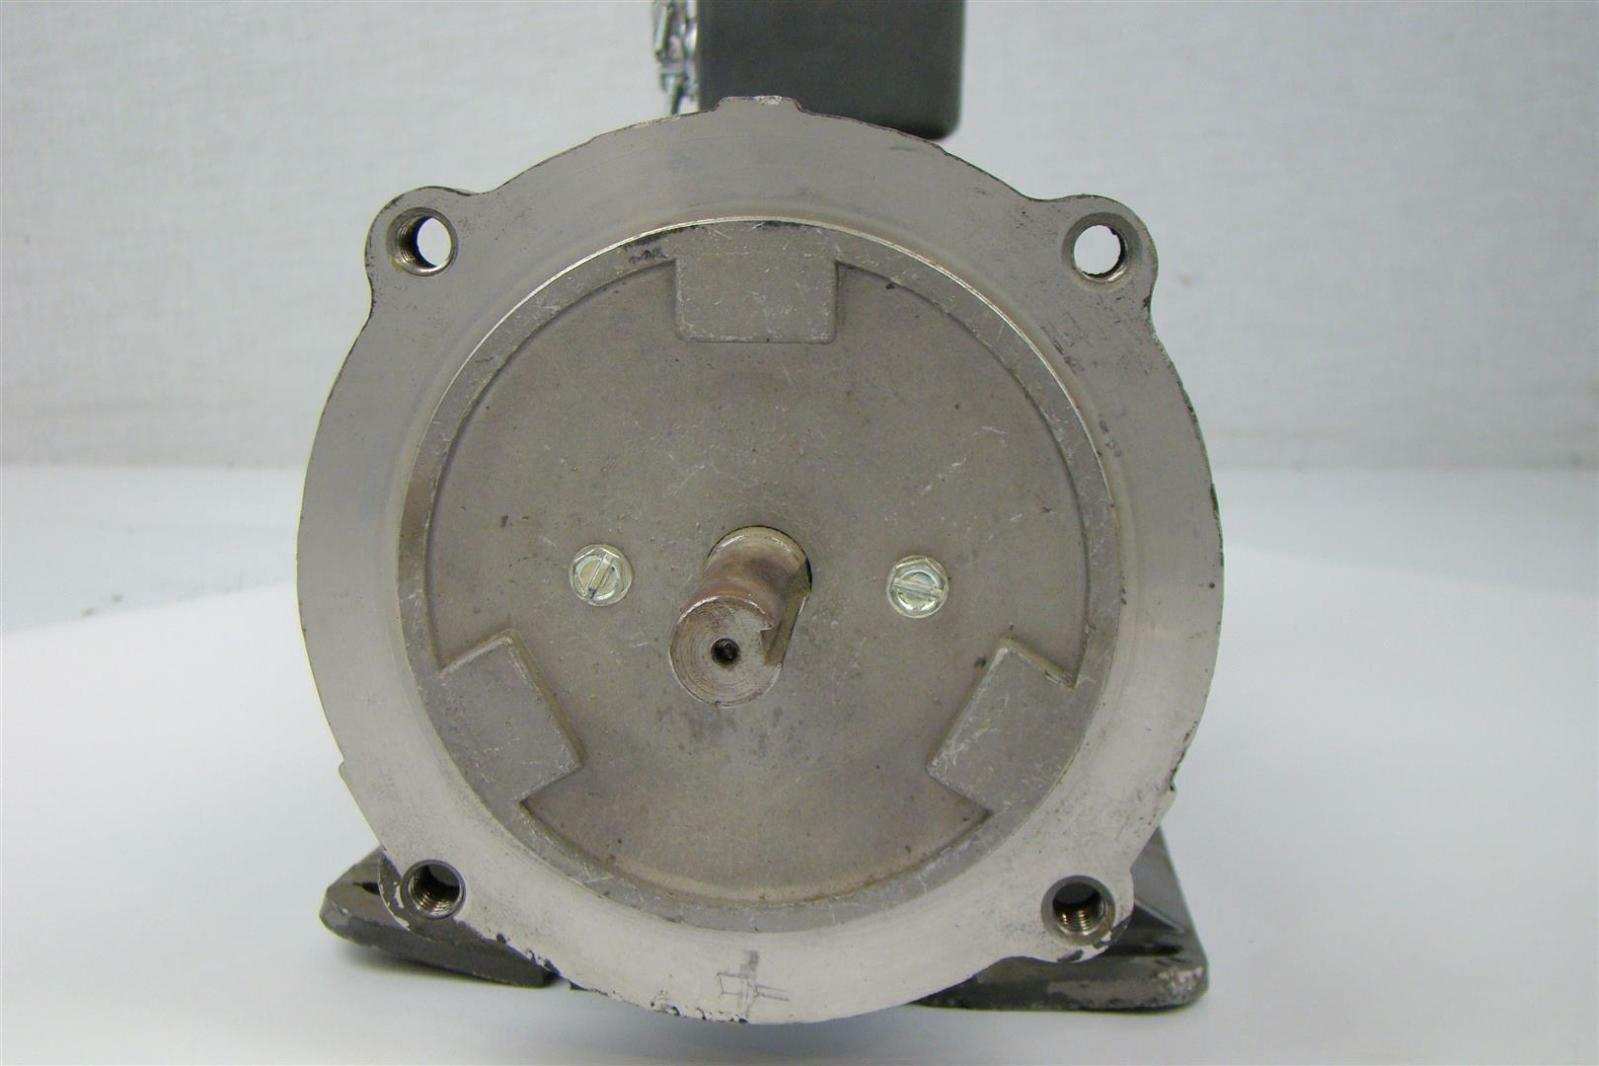 Baldor industrial dc motor 1 2hp 1750rpm 180v 2 5a cdp3326 for Baldor industrial motor parts